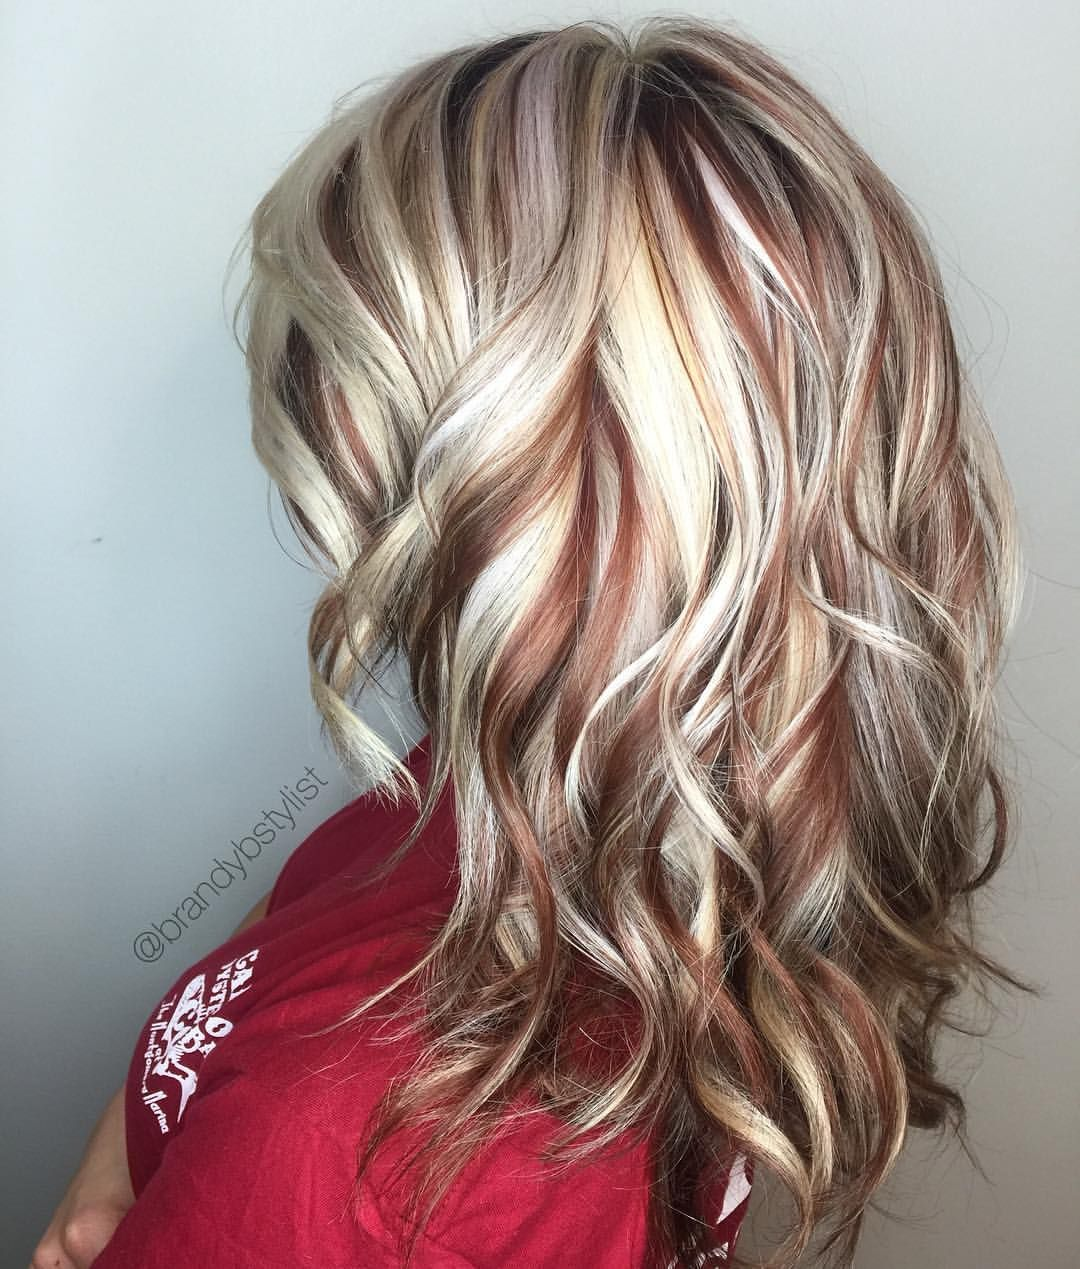 Blonde And Red Highlights Highlights Lowlights